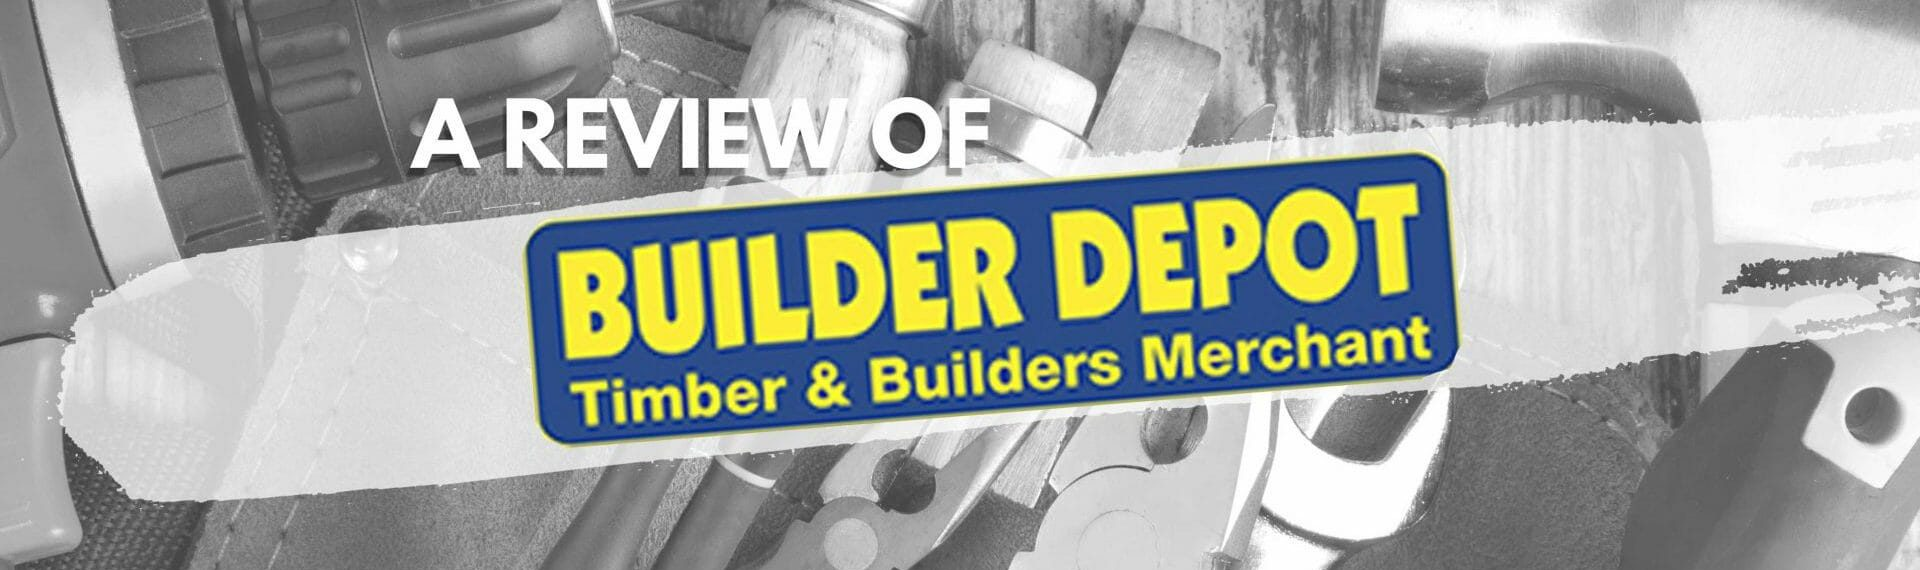 Builder Depot Review: How Does It Stack Up?